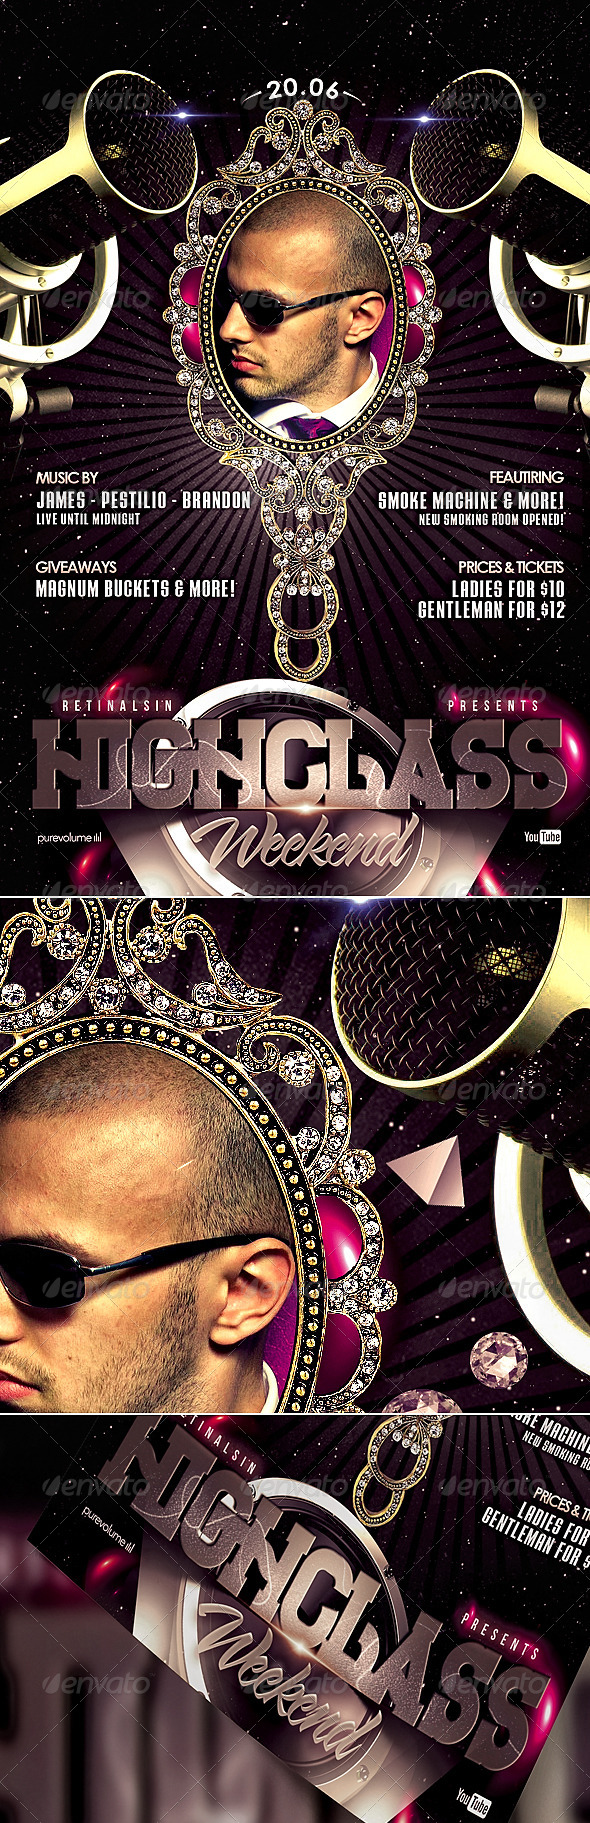 GraphicRiver HighClass Weekend Flyer Template 4655298